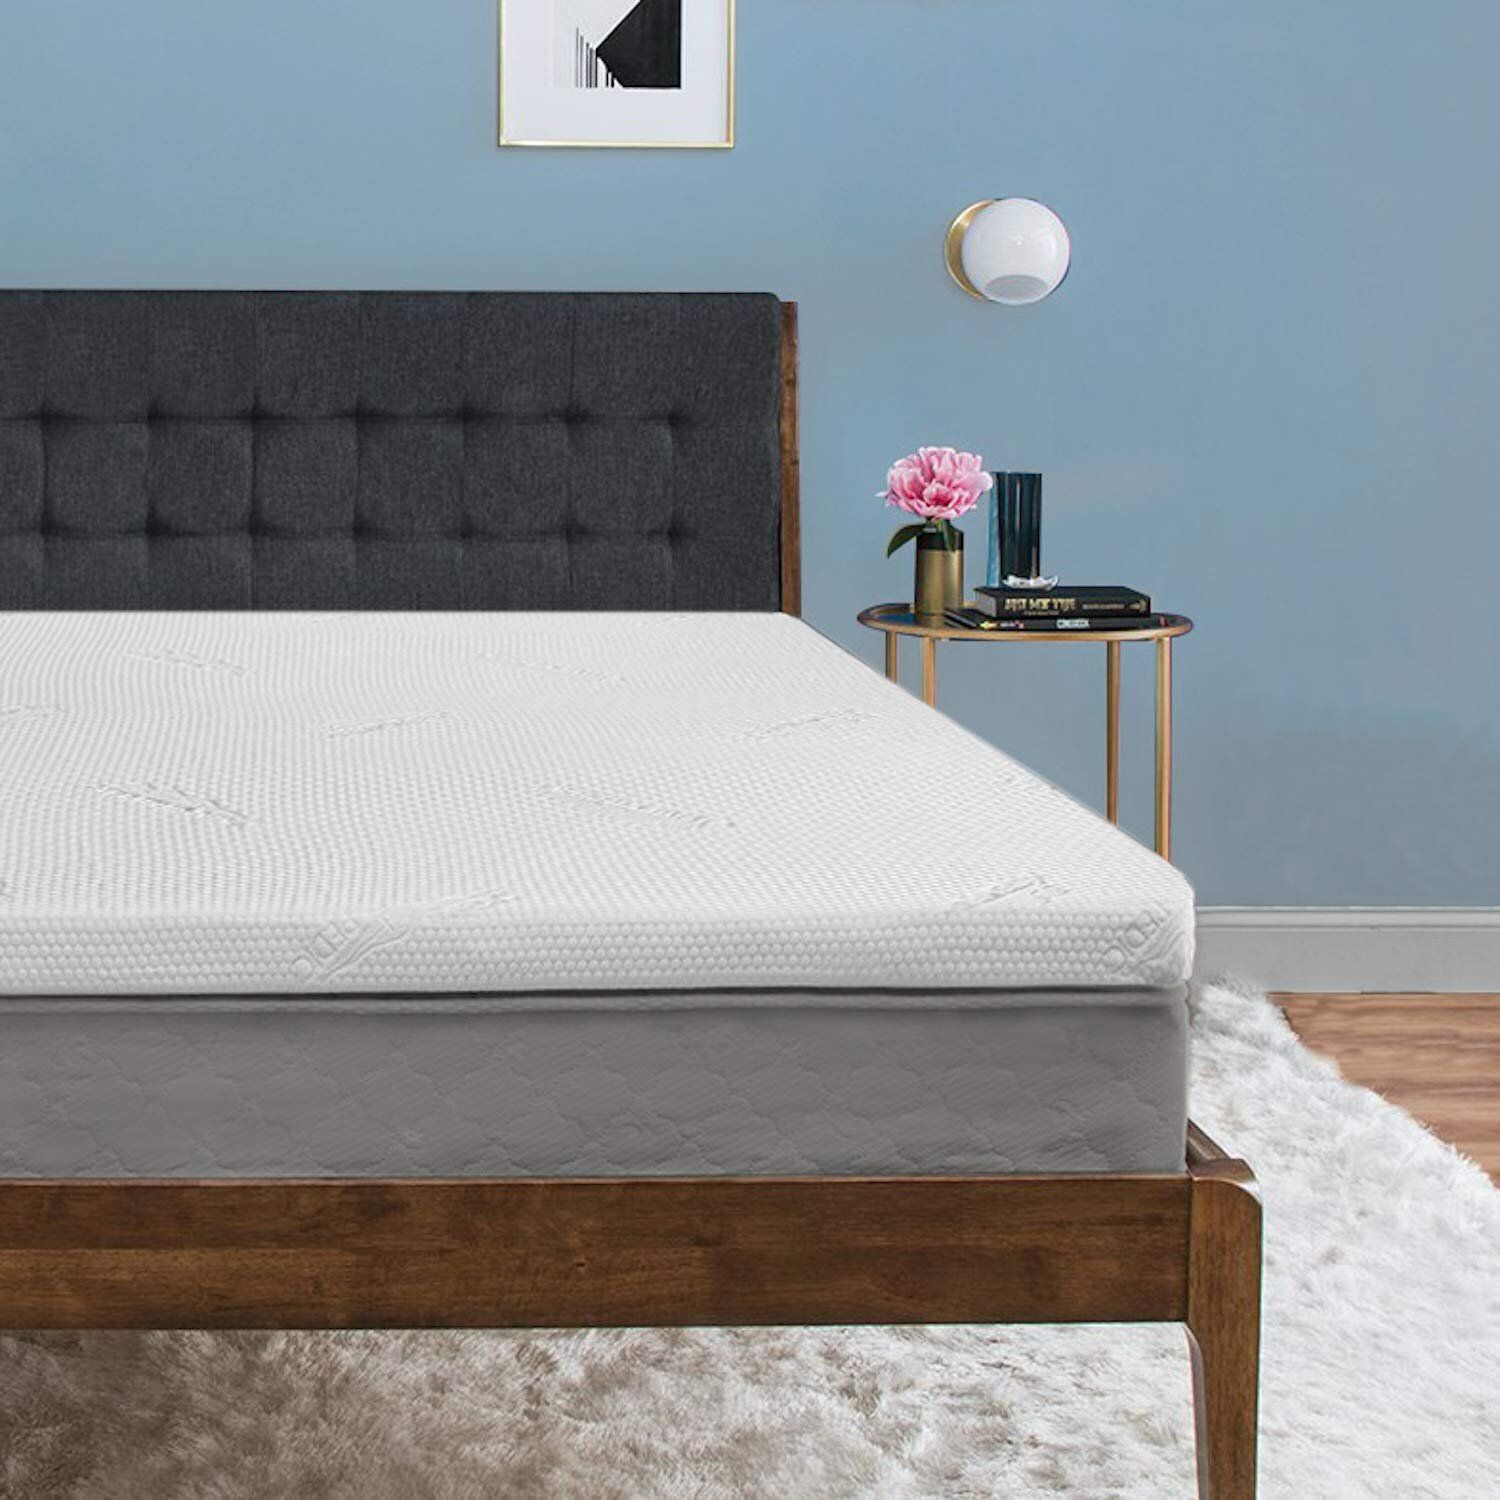 The 11 Best Mattress Toppers According To Customers Queen Mattress Topper Tempurpedic Mattress Mattress Topper